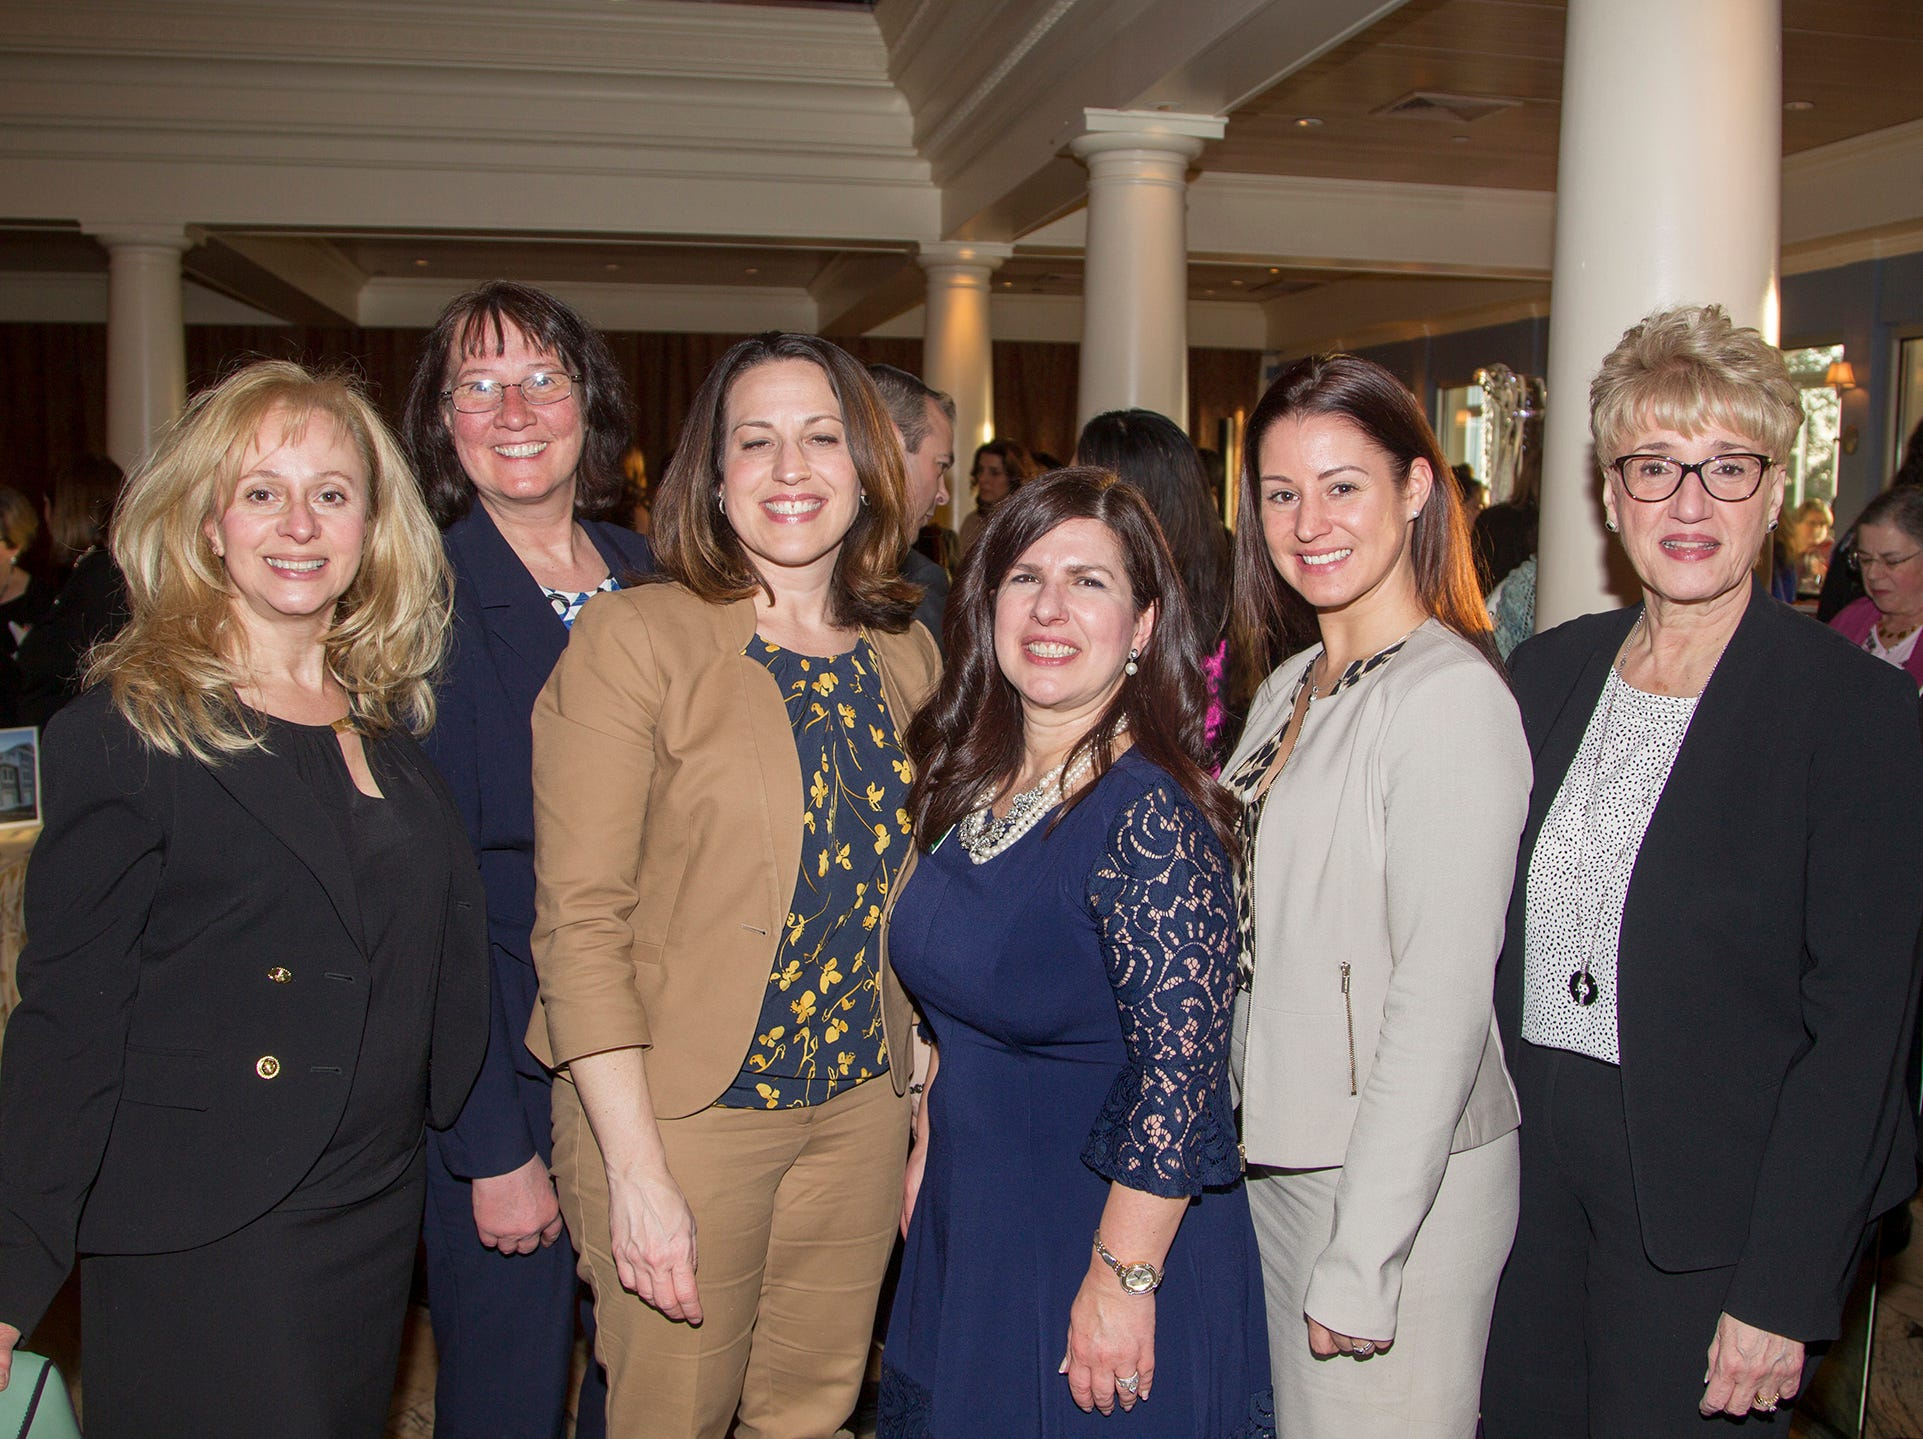 Kearny Bank-Patricia Hulbert, Erika Sacher, AnnMarie Feret, Veronica Ross, Jennifer Hawley, Linda Hanlon. Girl Scouts of Northern New Jersey held its Women of Achievement 2019 at Westmount Country Club in Woodland Park. 04/04/2019